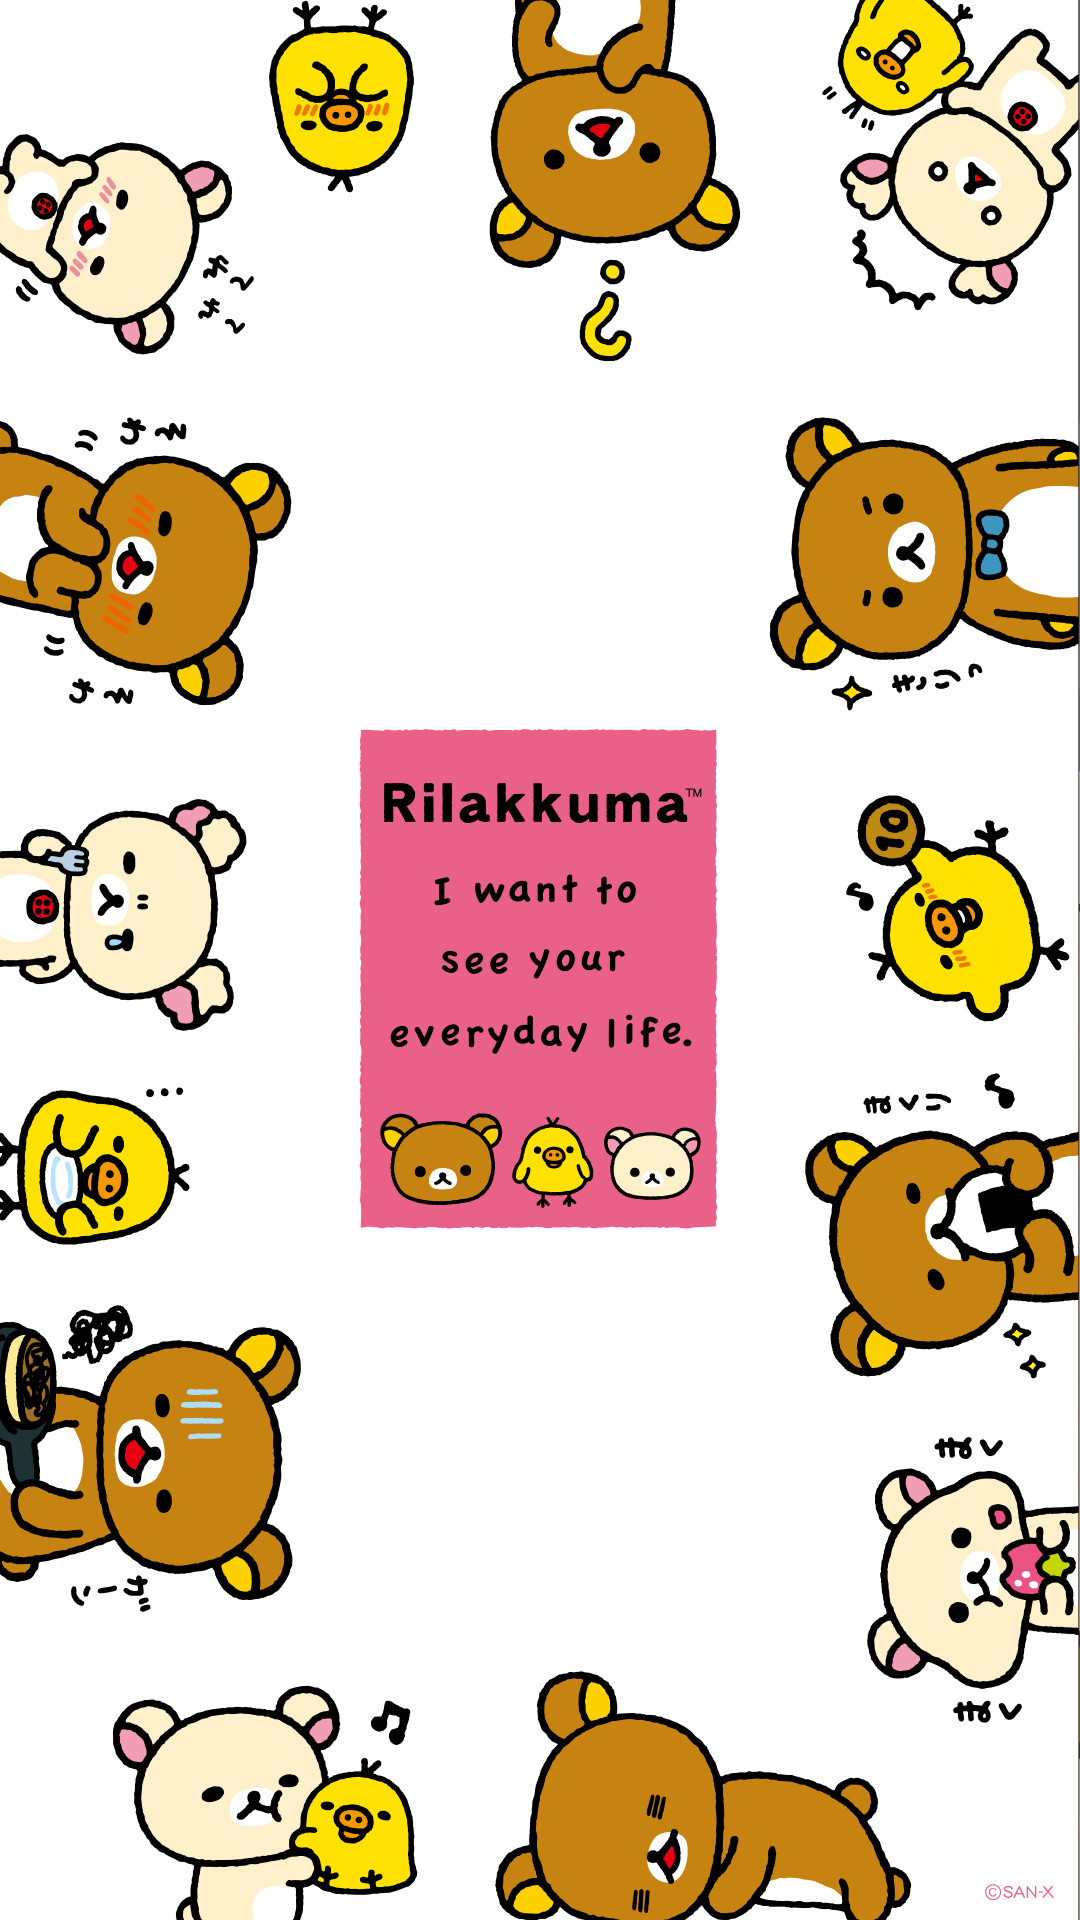 Res: 1080x1920, cfdebadc-rilakkuma-phone-wallpaper-wp380543